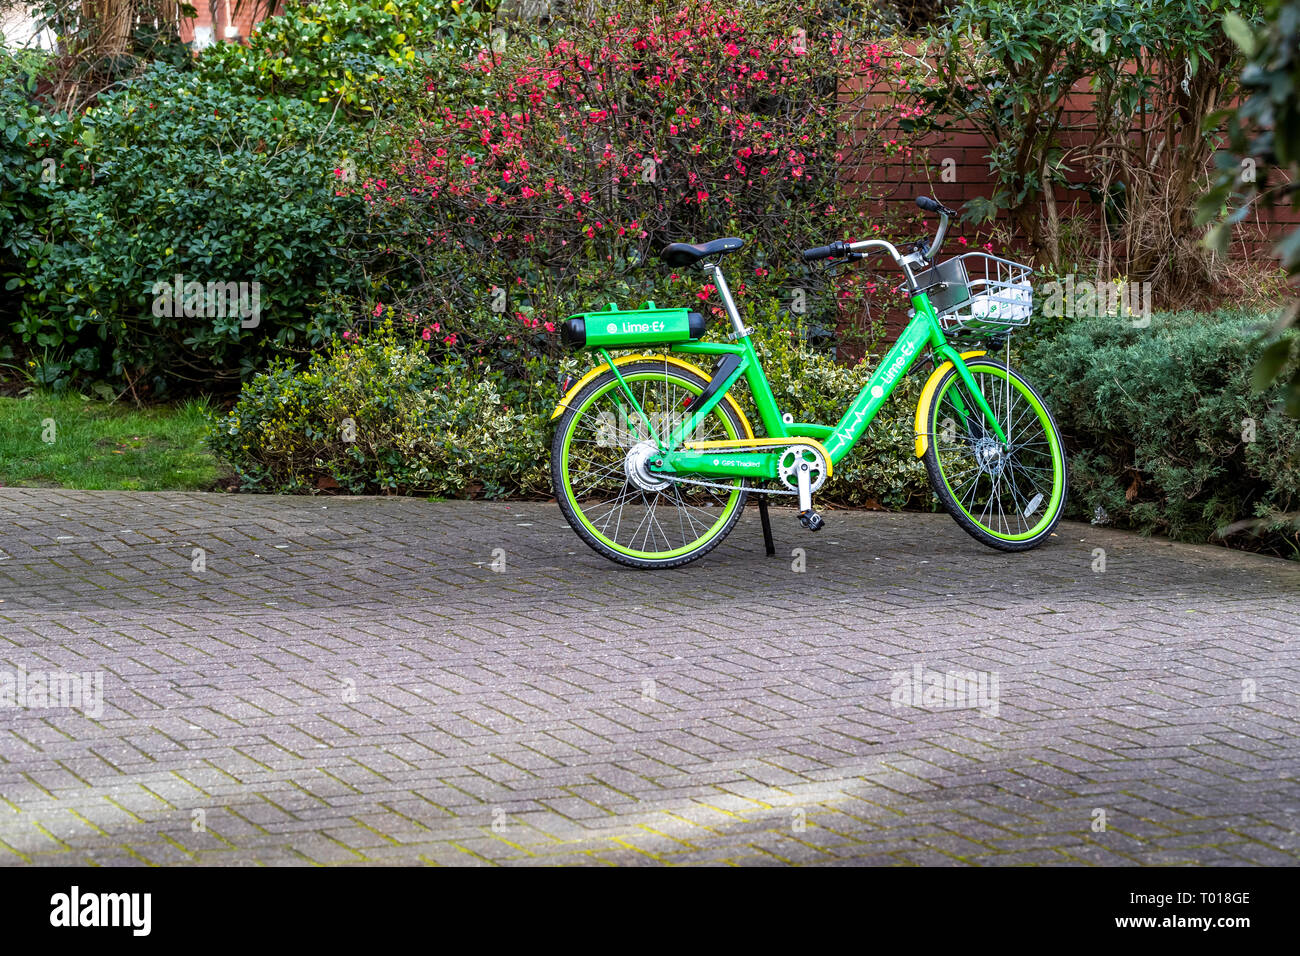 Communal bicycles bookable by mobile device app for use by